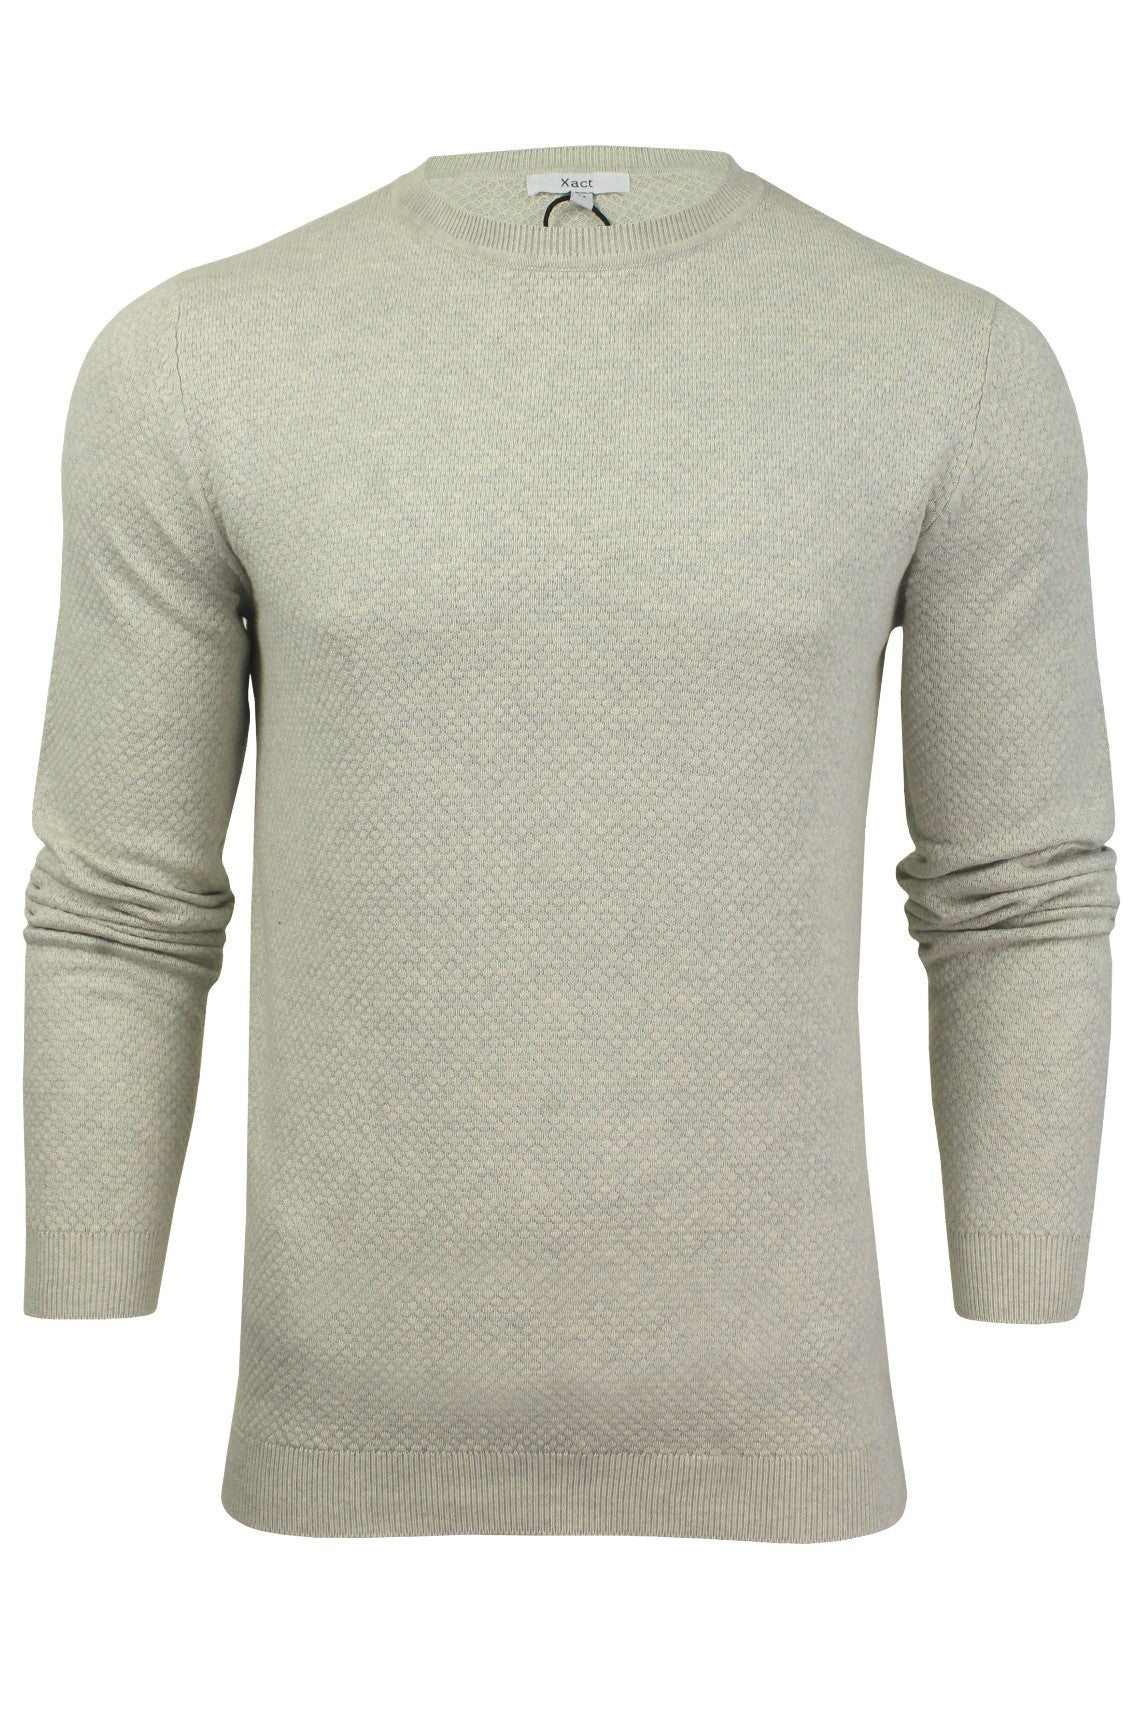 Xact Mens Crew Neck Cotton Jumper_01_XK1013_Birch Marl